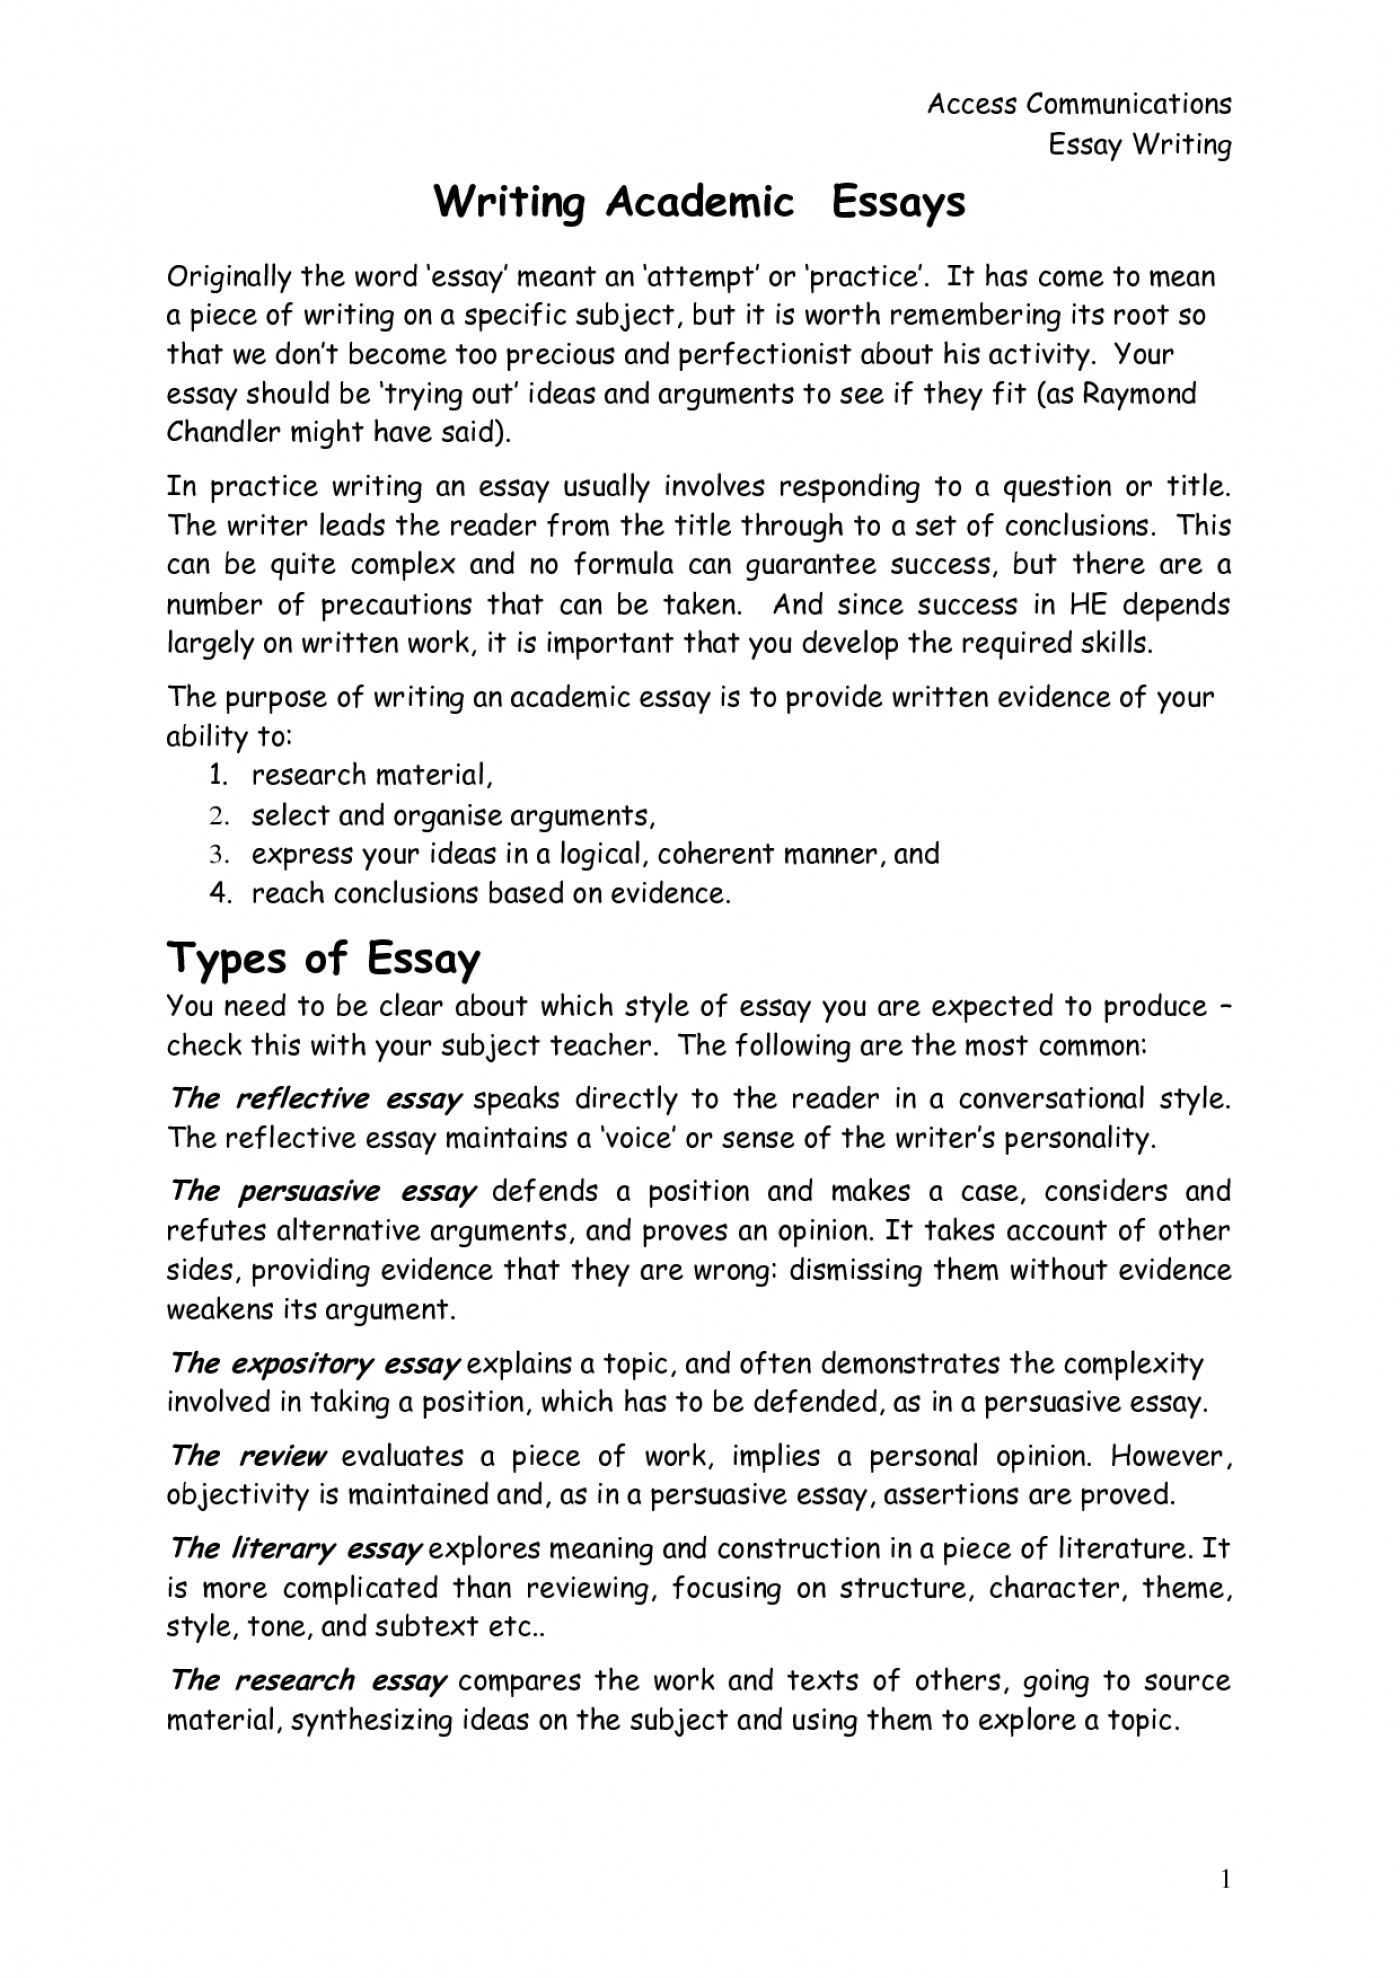 019 Write My Essay For Me Example Surprising Free Online Cheap App 1400